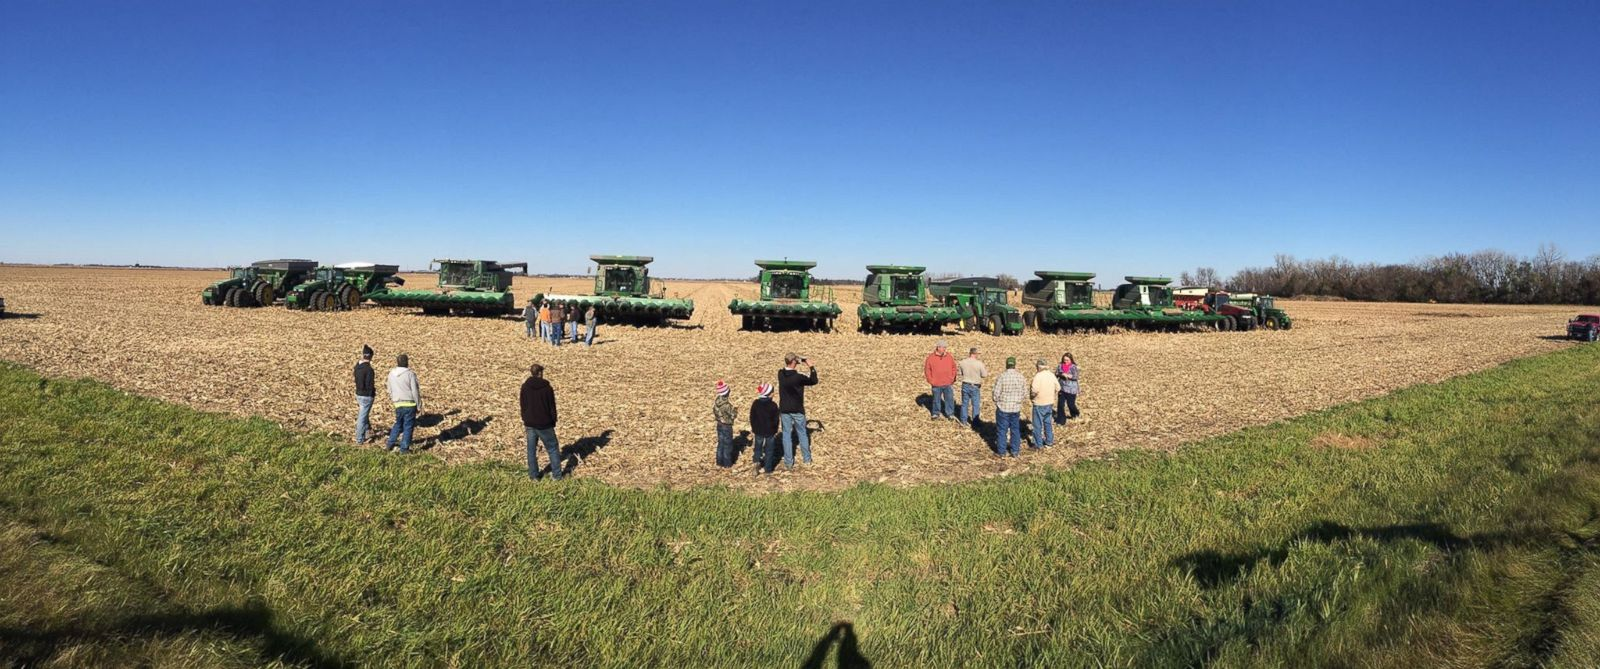 PHOTO:Members of the Lennox, South Dakota farming community come together to complete the harvest of Dave Klinghagen, who passed away suddenly.